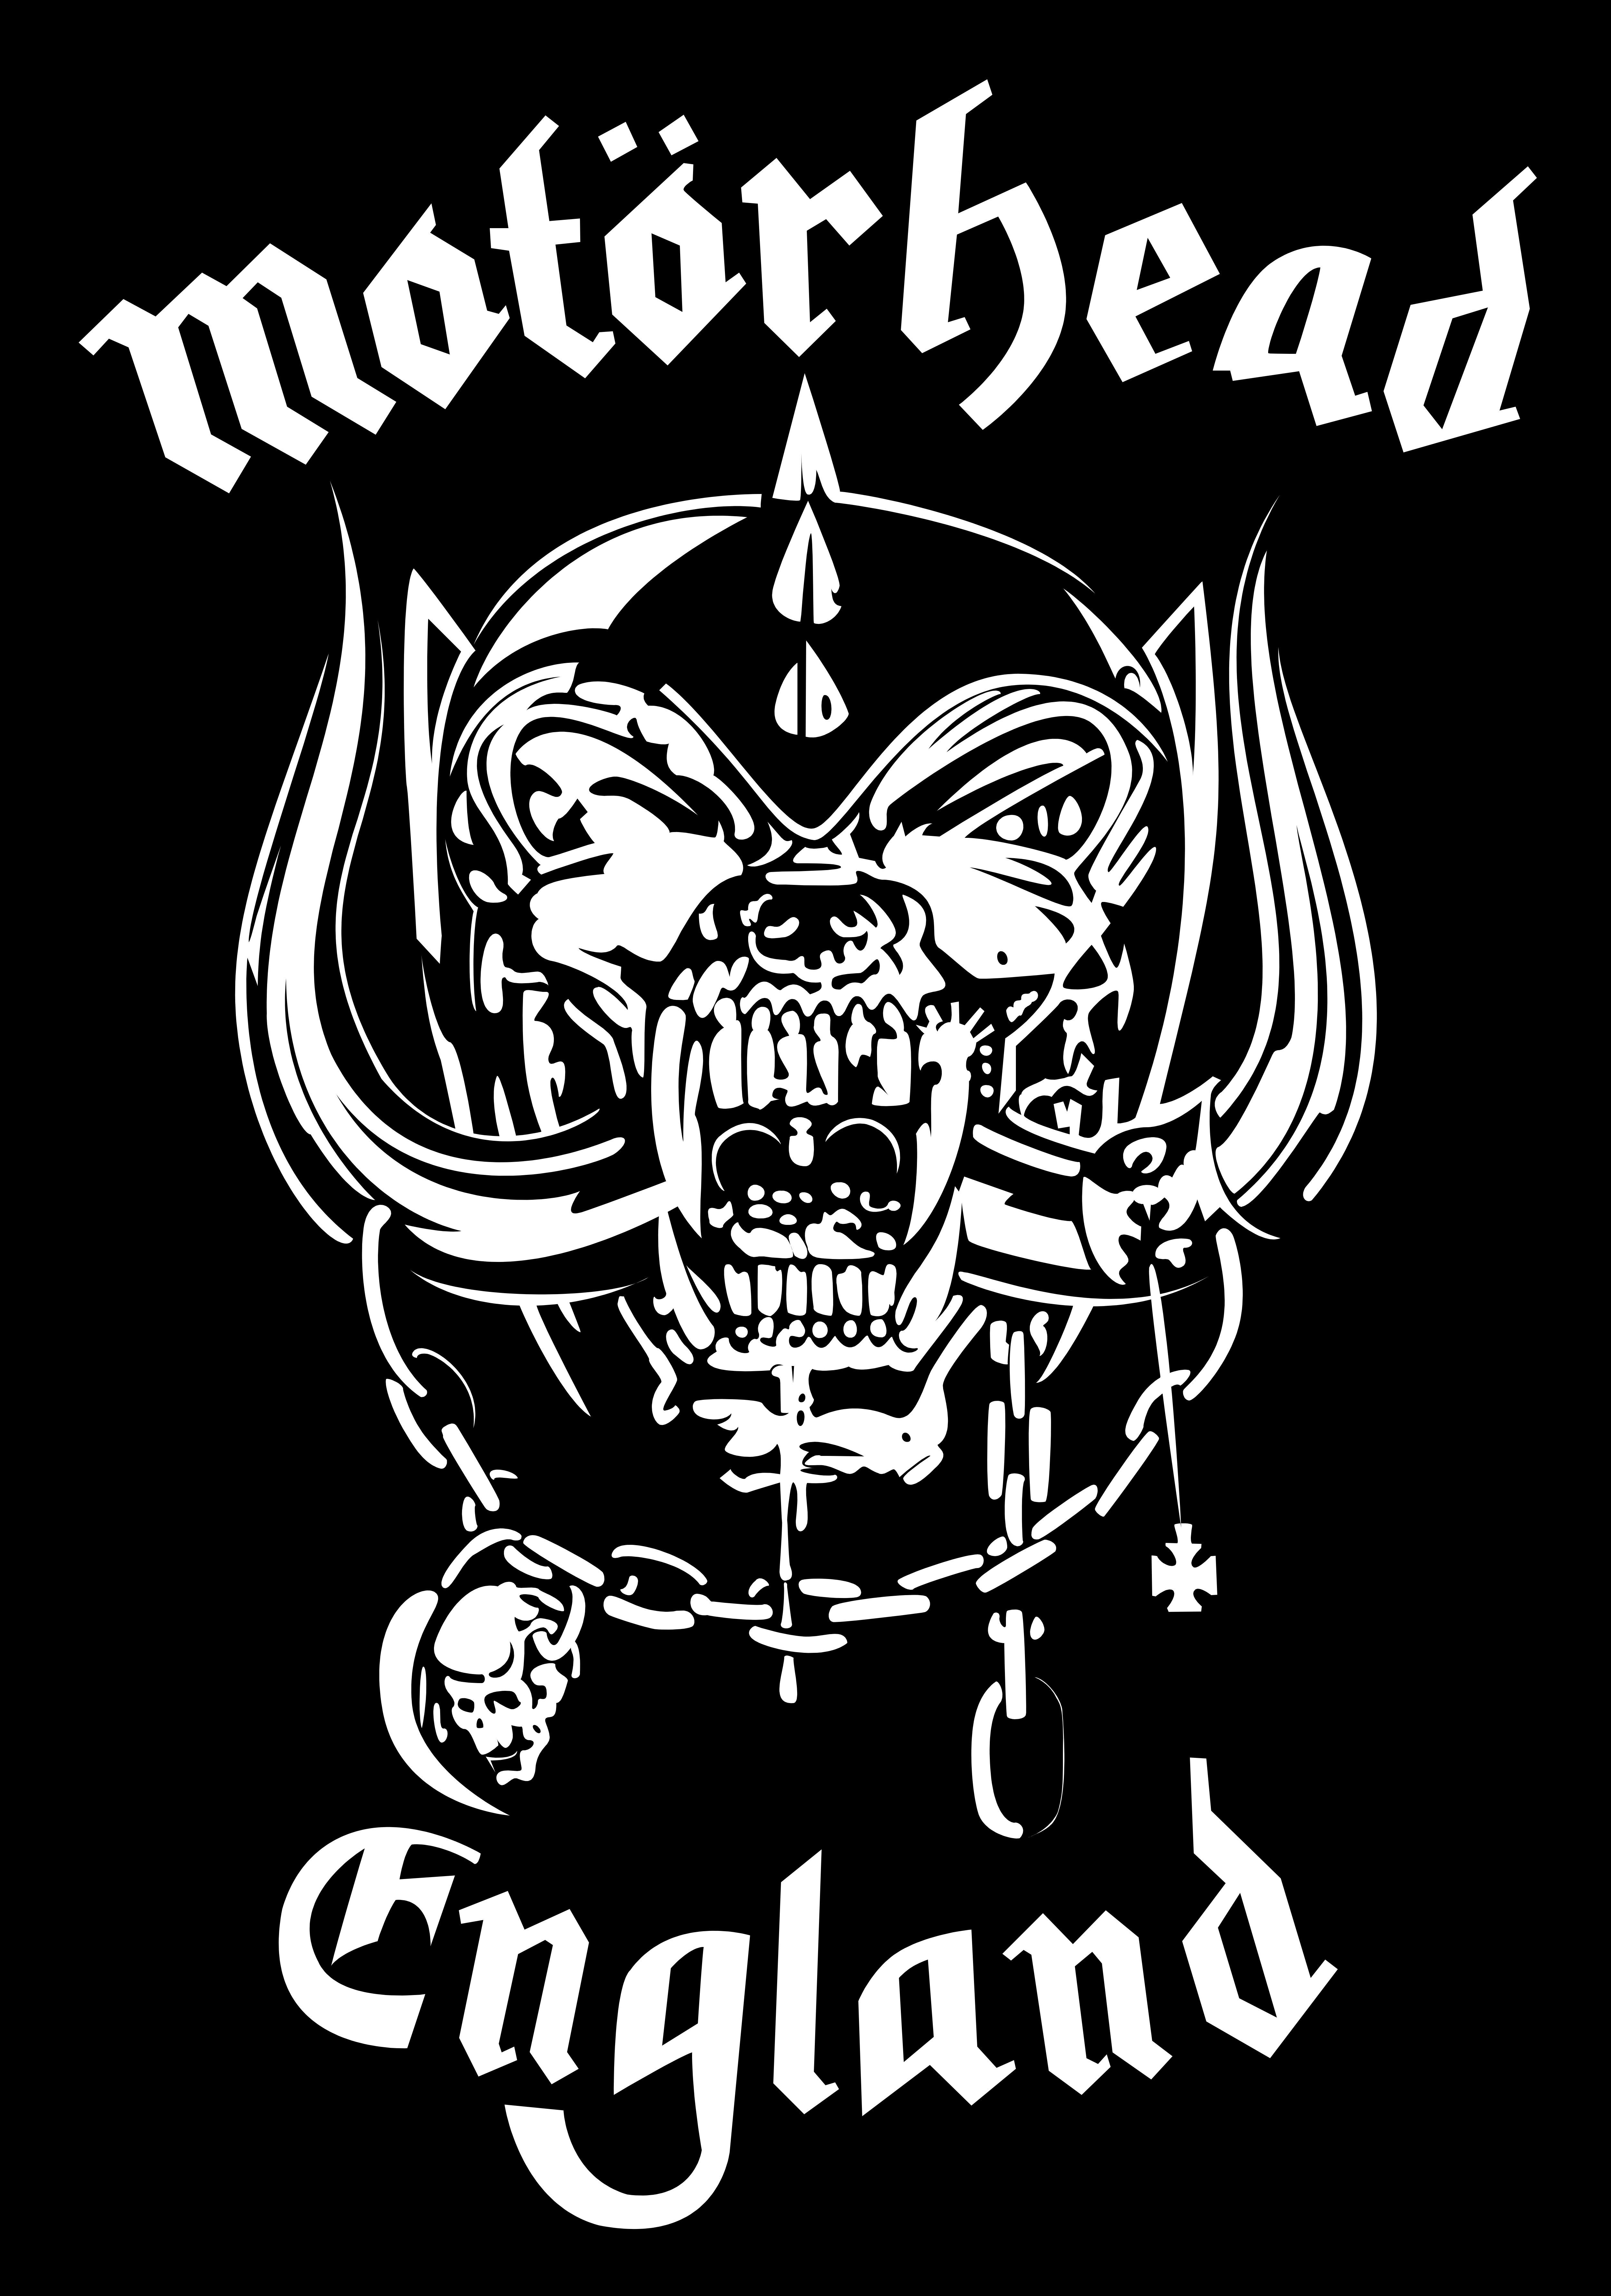 Black and white clipart high resolution motorhead image transparent library Motorhead snaggletooth Logos image transparent library